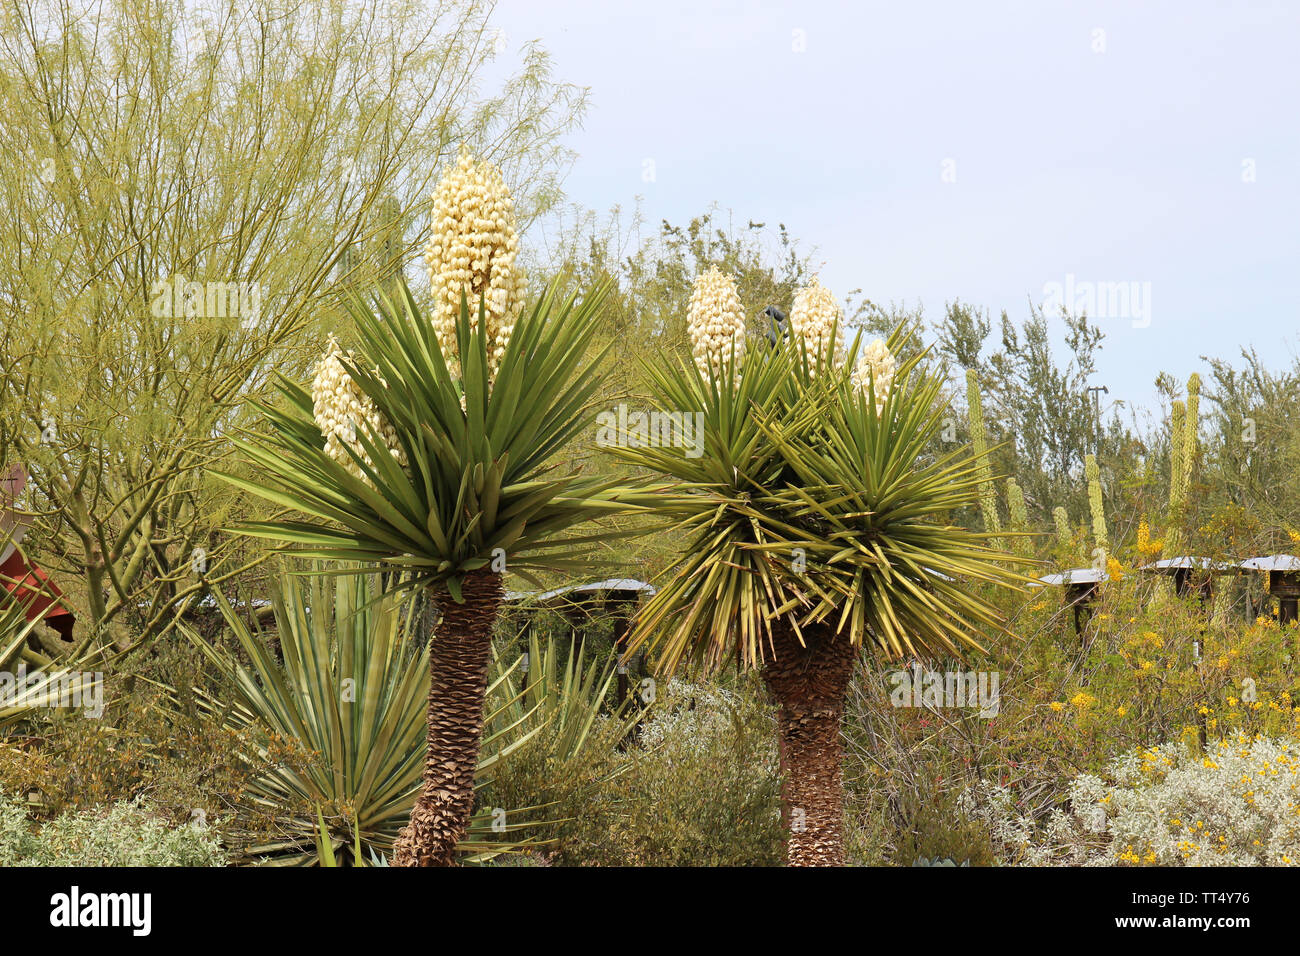 A desert landscape featuring profusely flowering Mojave Yucca plants, Desert Marigolds, various shrubs, and a Palo Verde Tree in Arizona, USA - Stock Image